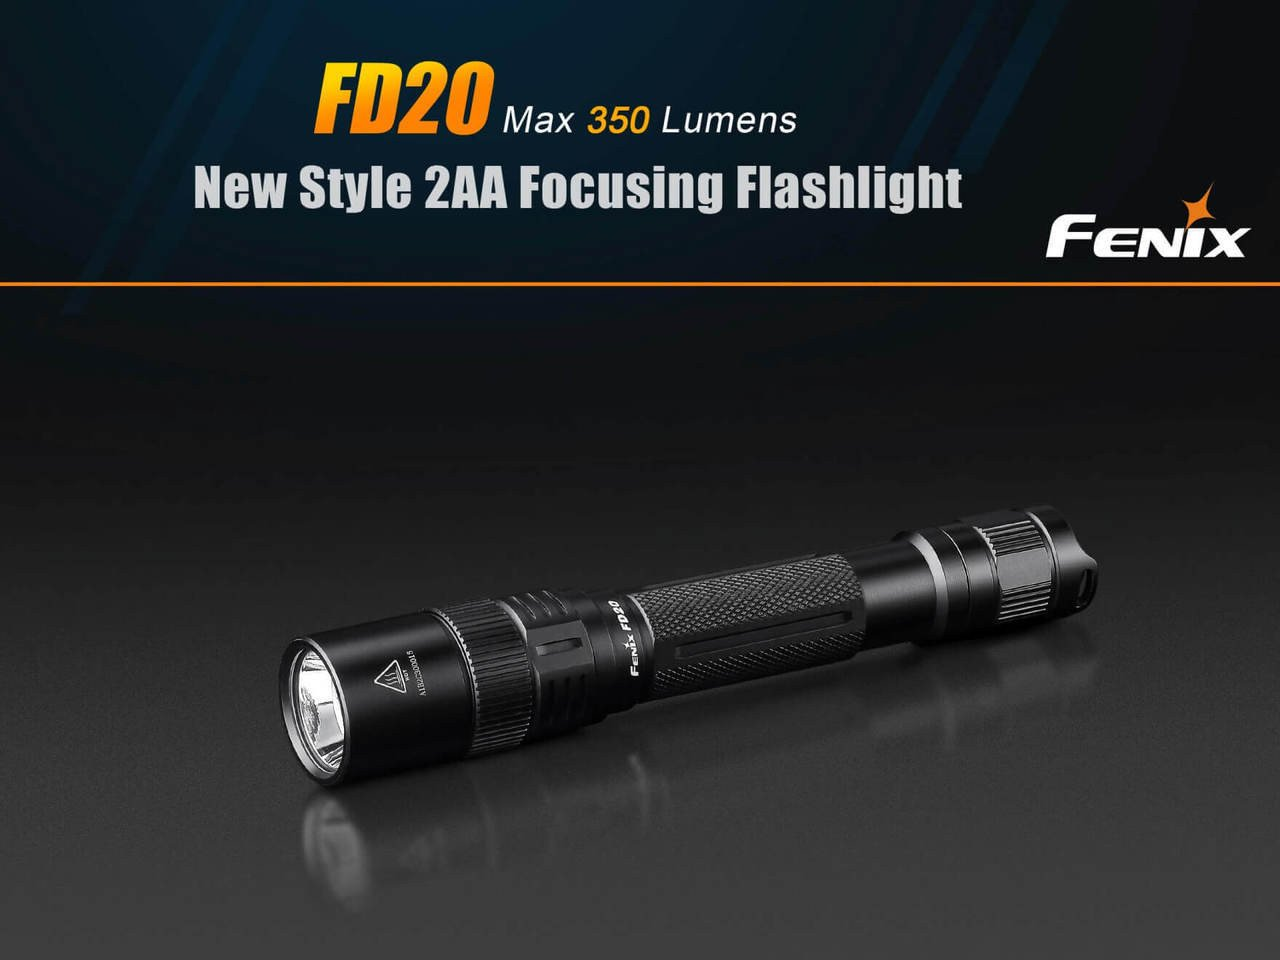 Fenix FD20, FD20 in India, Focusable Flashlight, FD20 Focus Light, Torch in India, Buy Online in India, Fenix New Product 2017